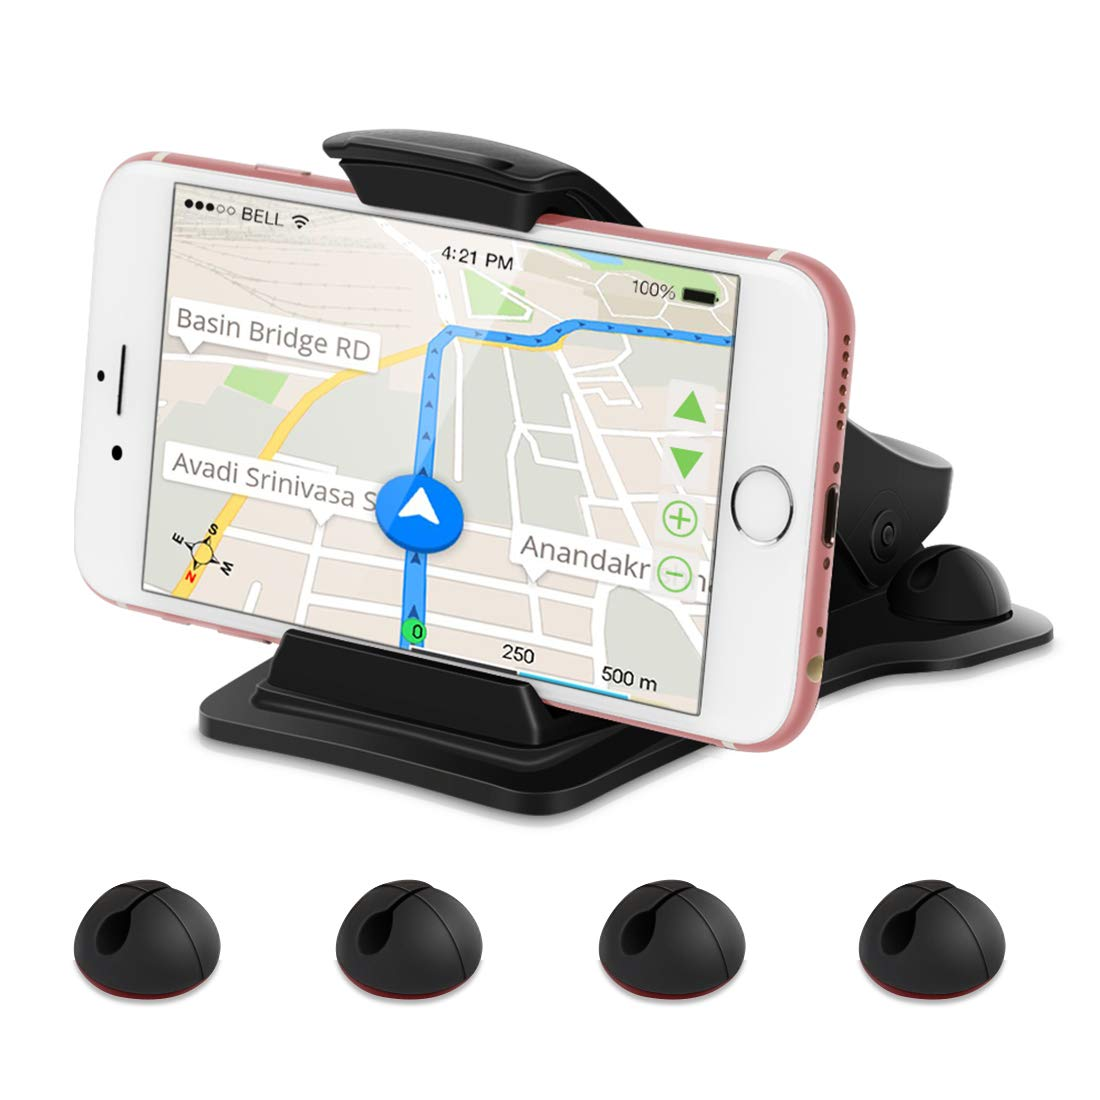 Leelbox Phone Holder for Car Dashboard Cell Phone Holder Mount Stand with 5 Cable Clips and Strong Sticky Pads Universal for 3-6.5 inch Smartphone or GPS Devices Black 4351484834 Car Phone Mount